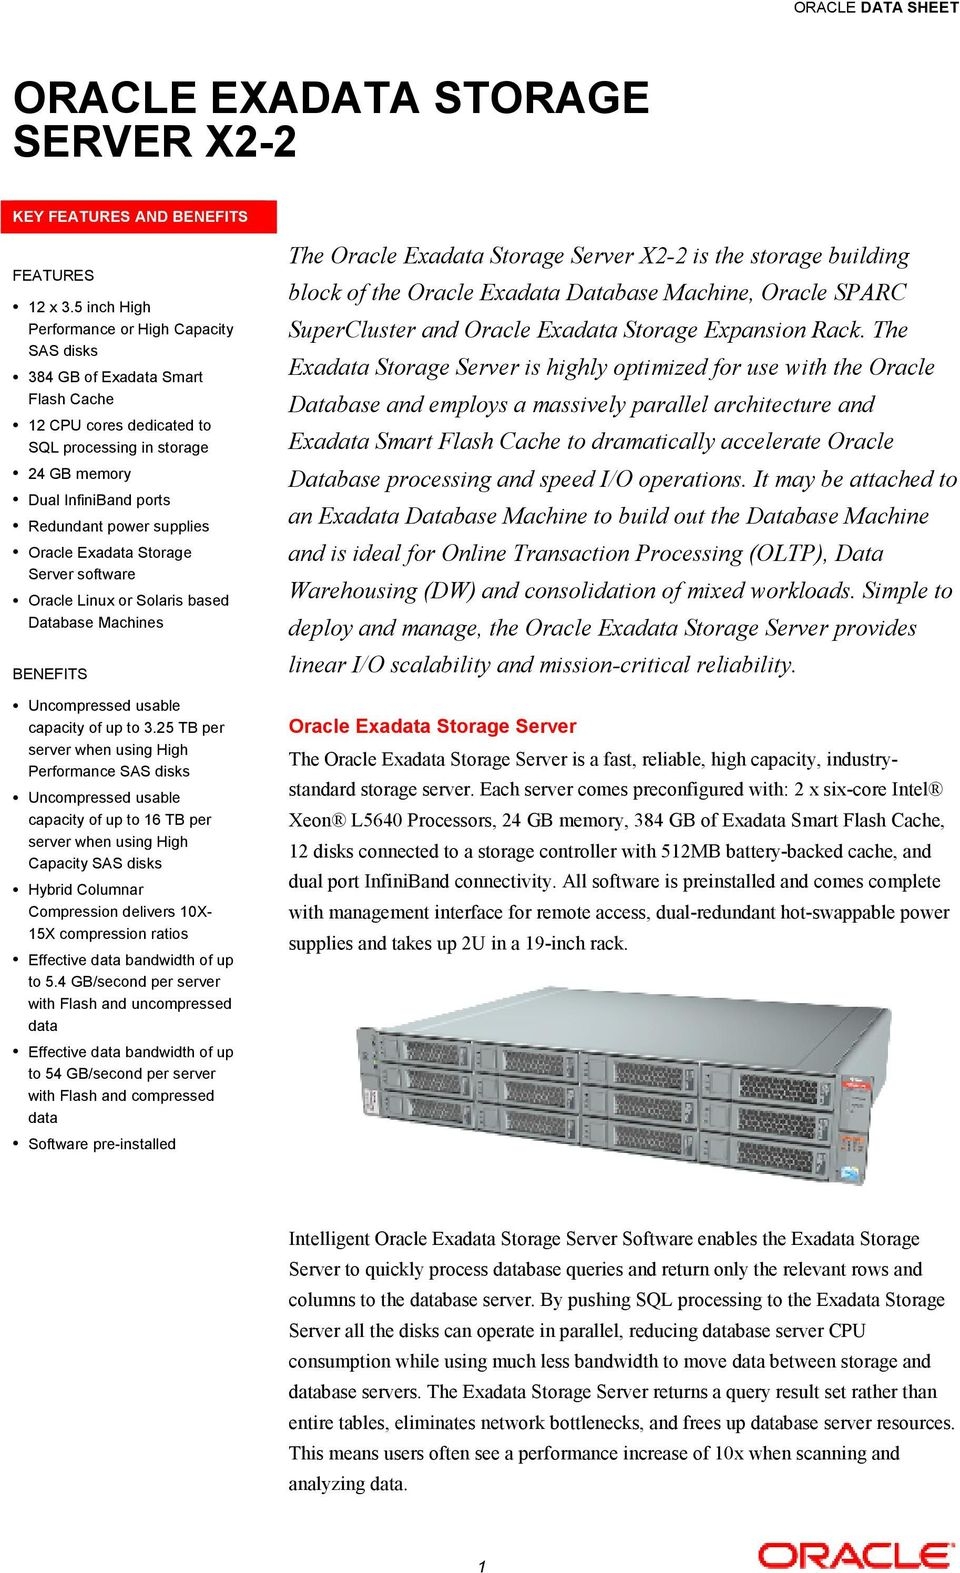 Oracle Exadata Storage Server software Oracle Linux or Solaris based Database Machines BENEFITS Uncompressed usable capacity of up to 3.